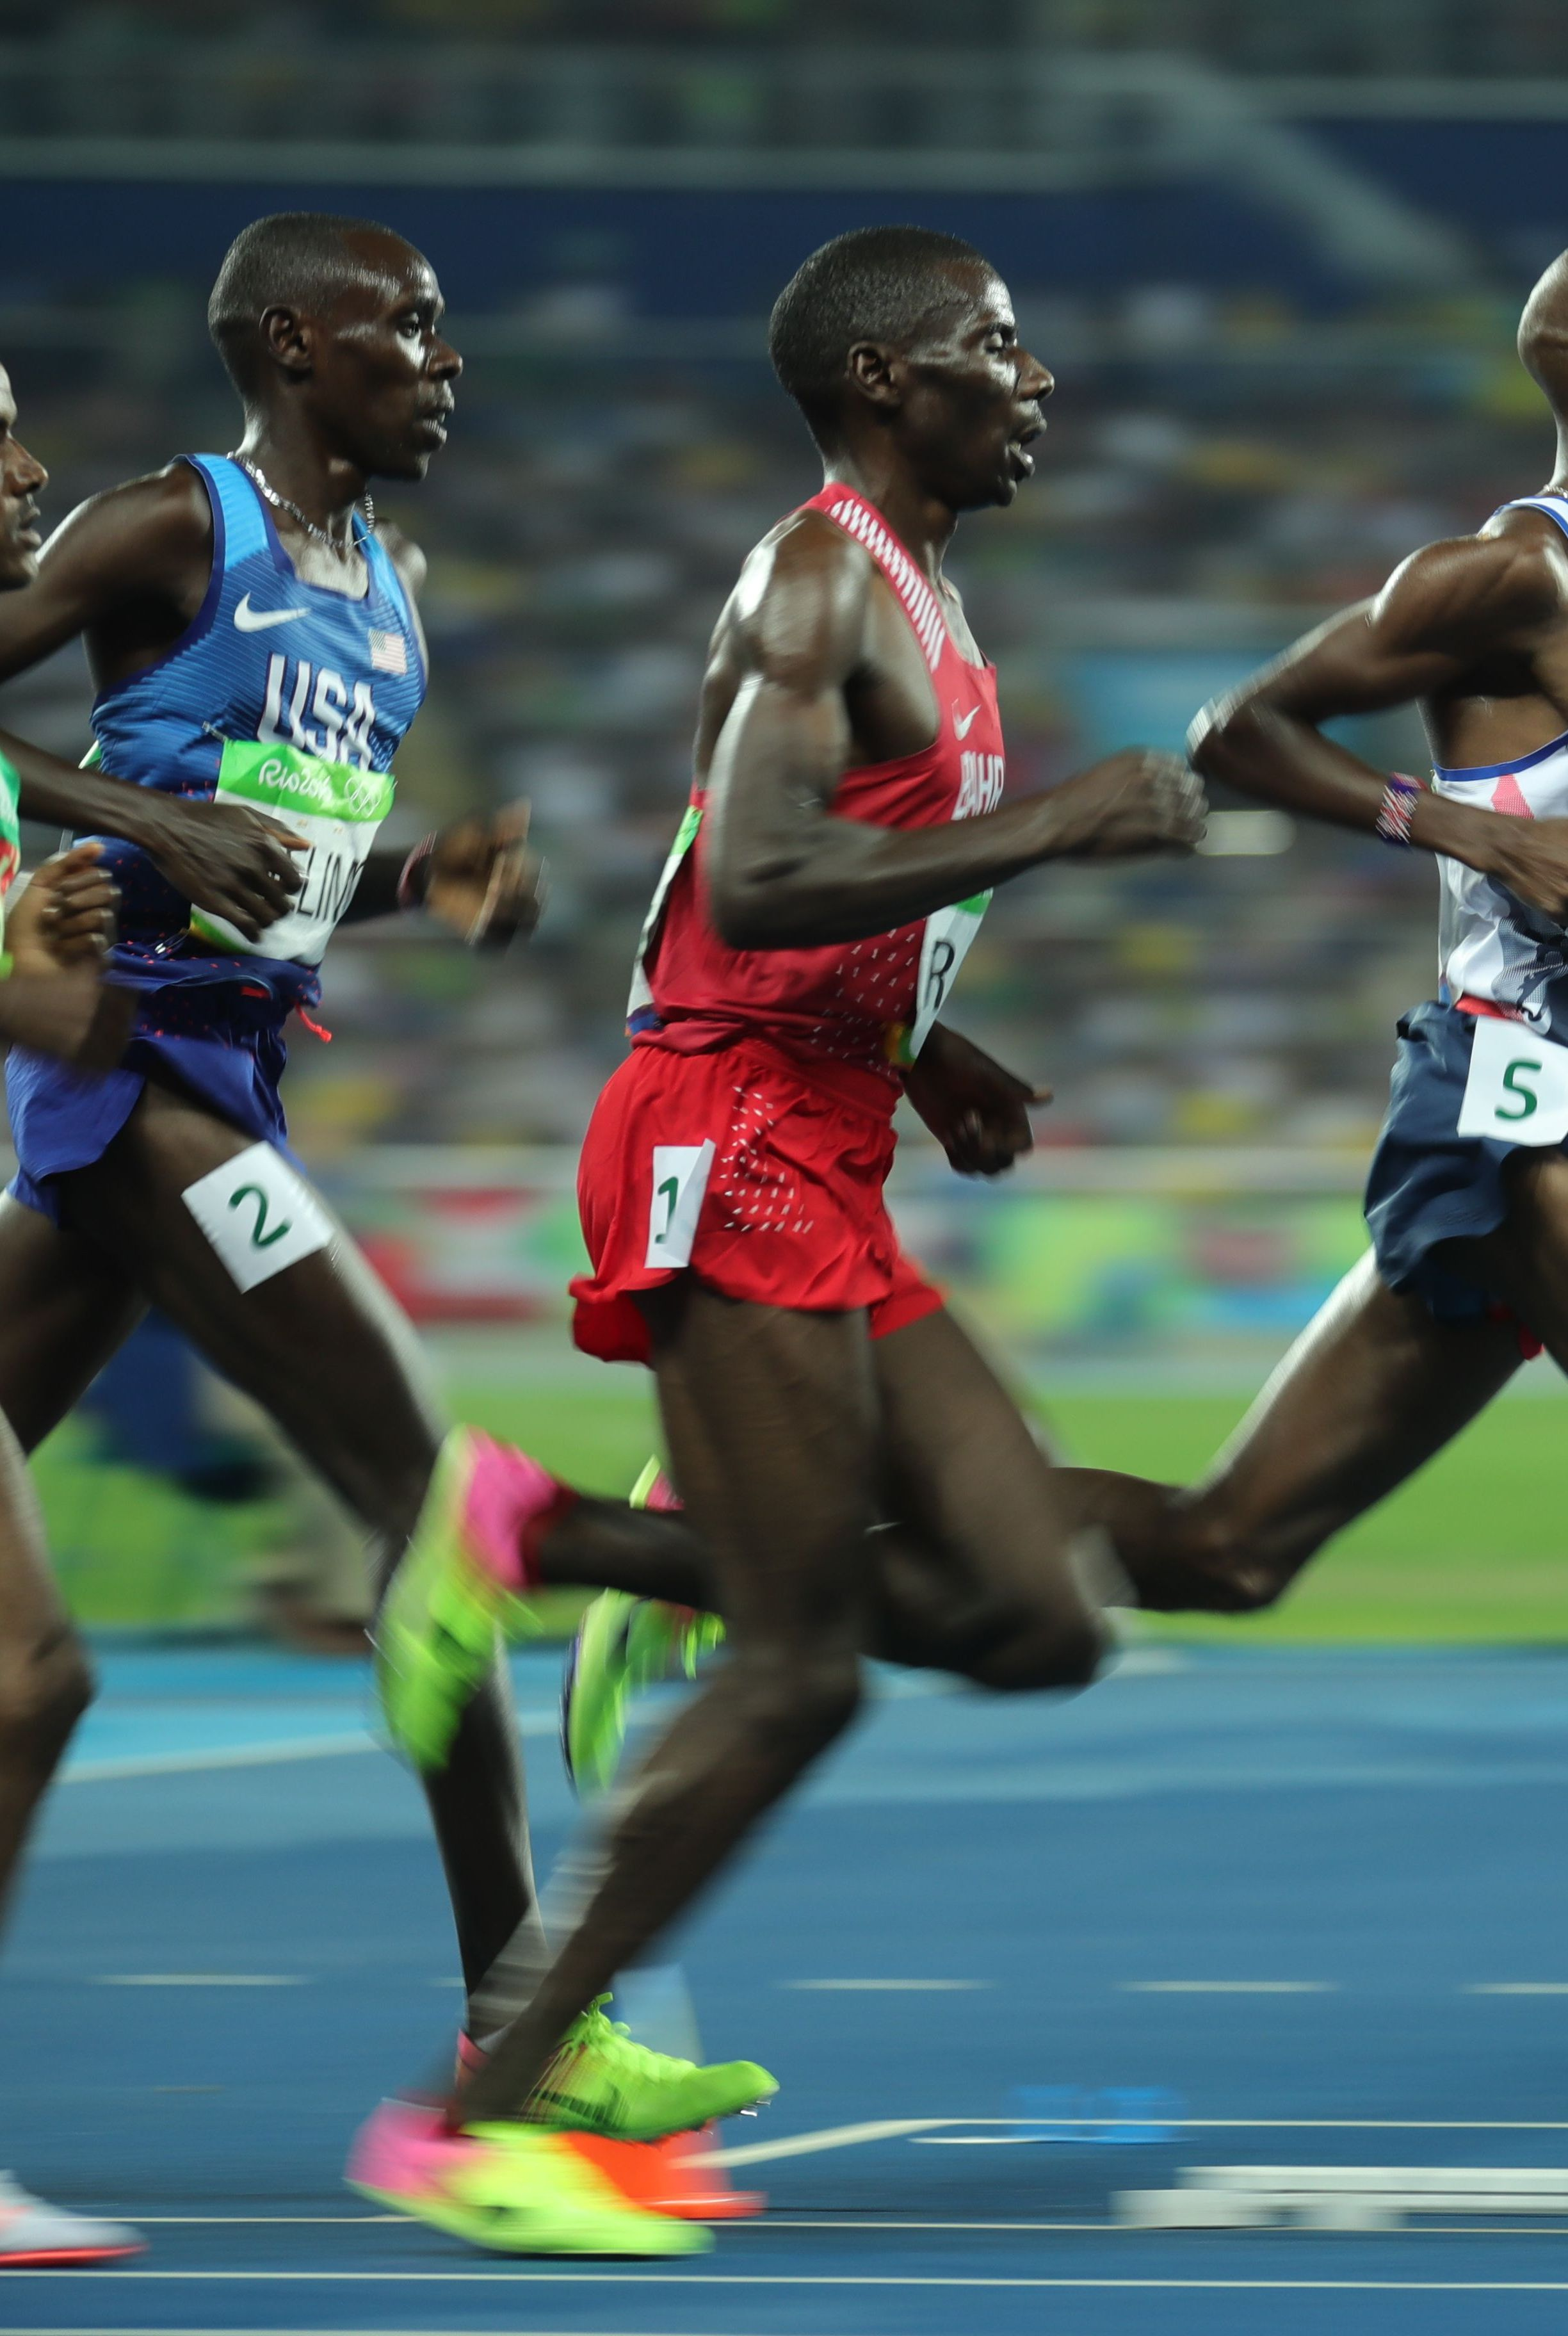 Why Pro Runners Are Upset Over the New Olympic Standards